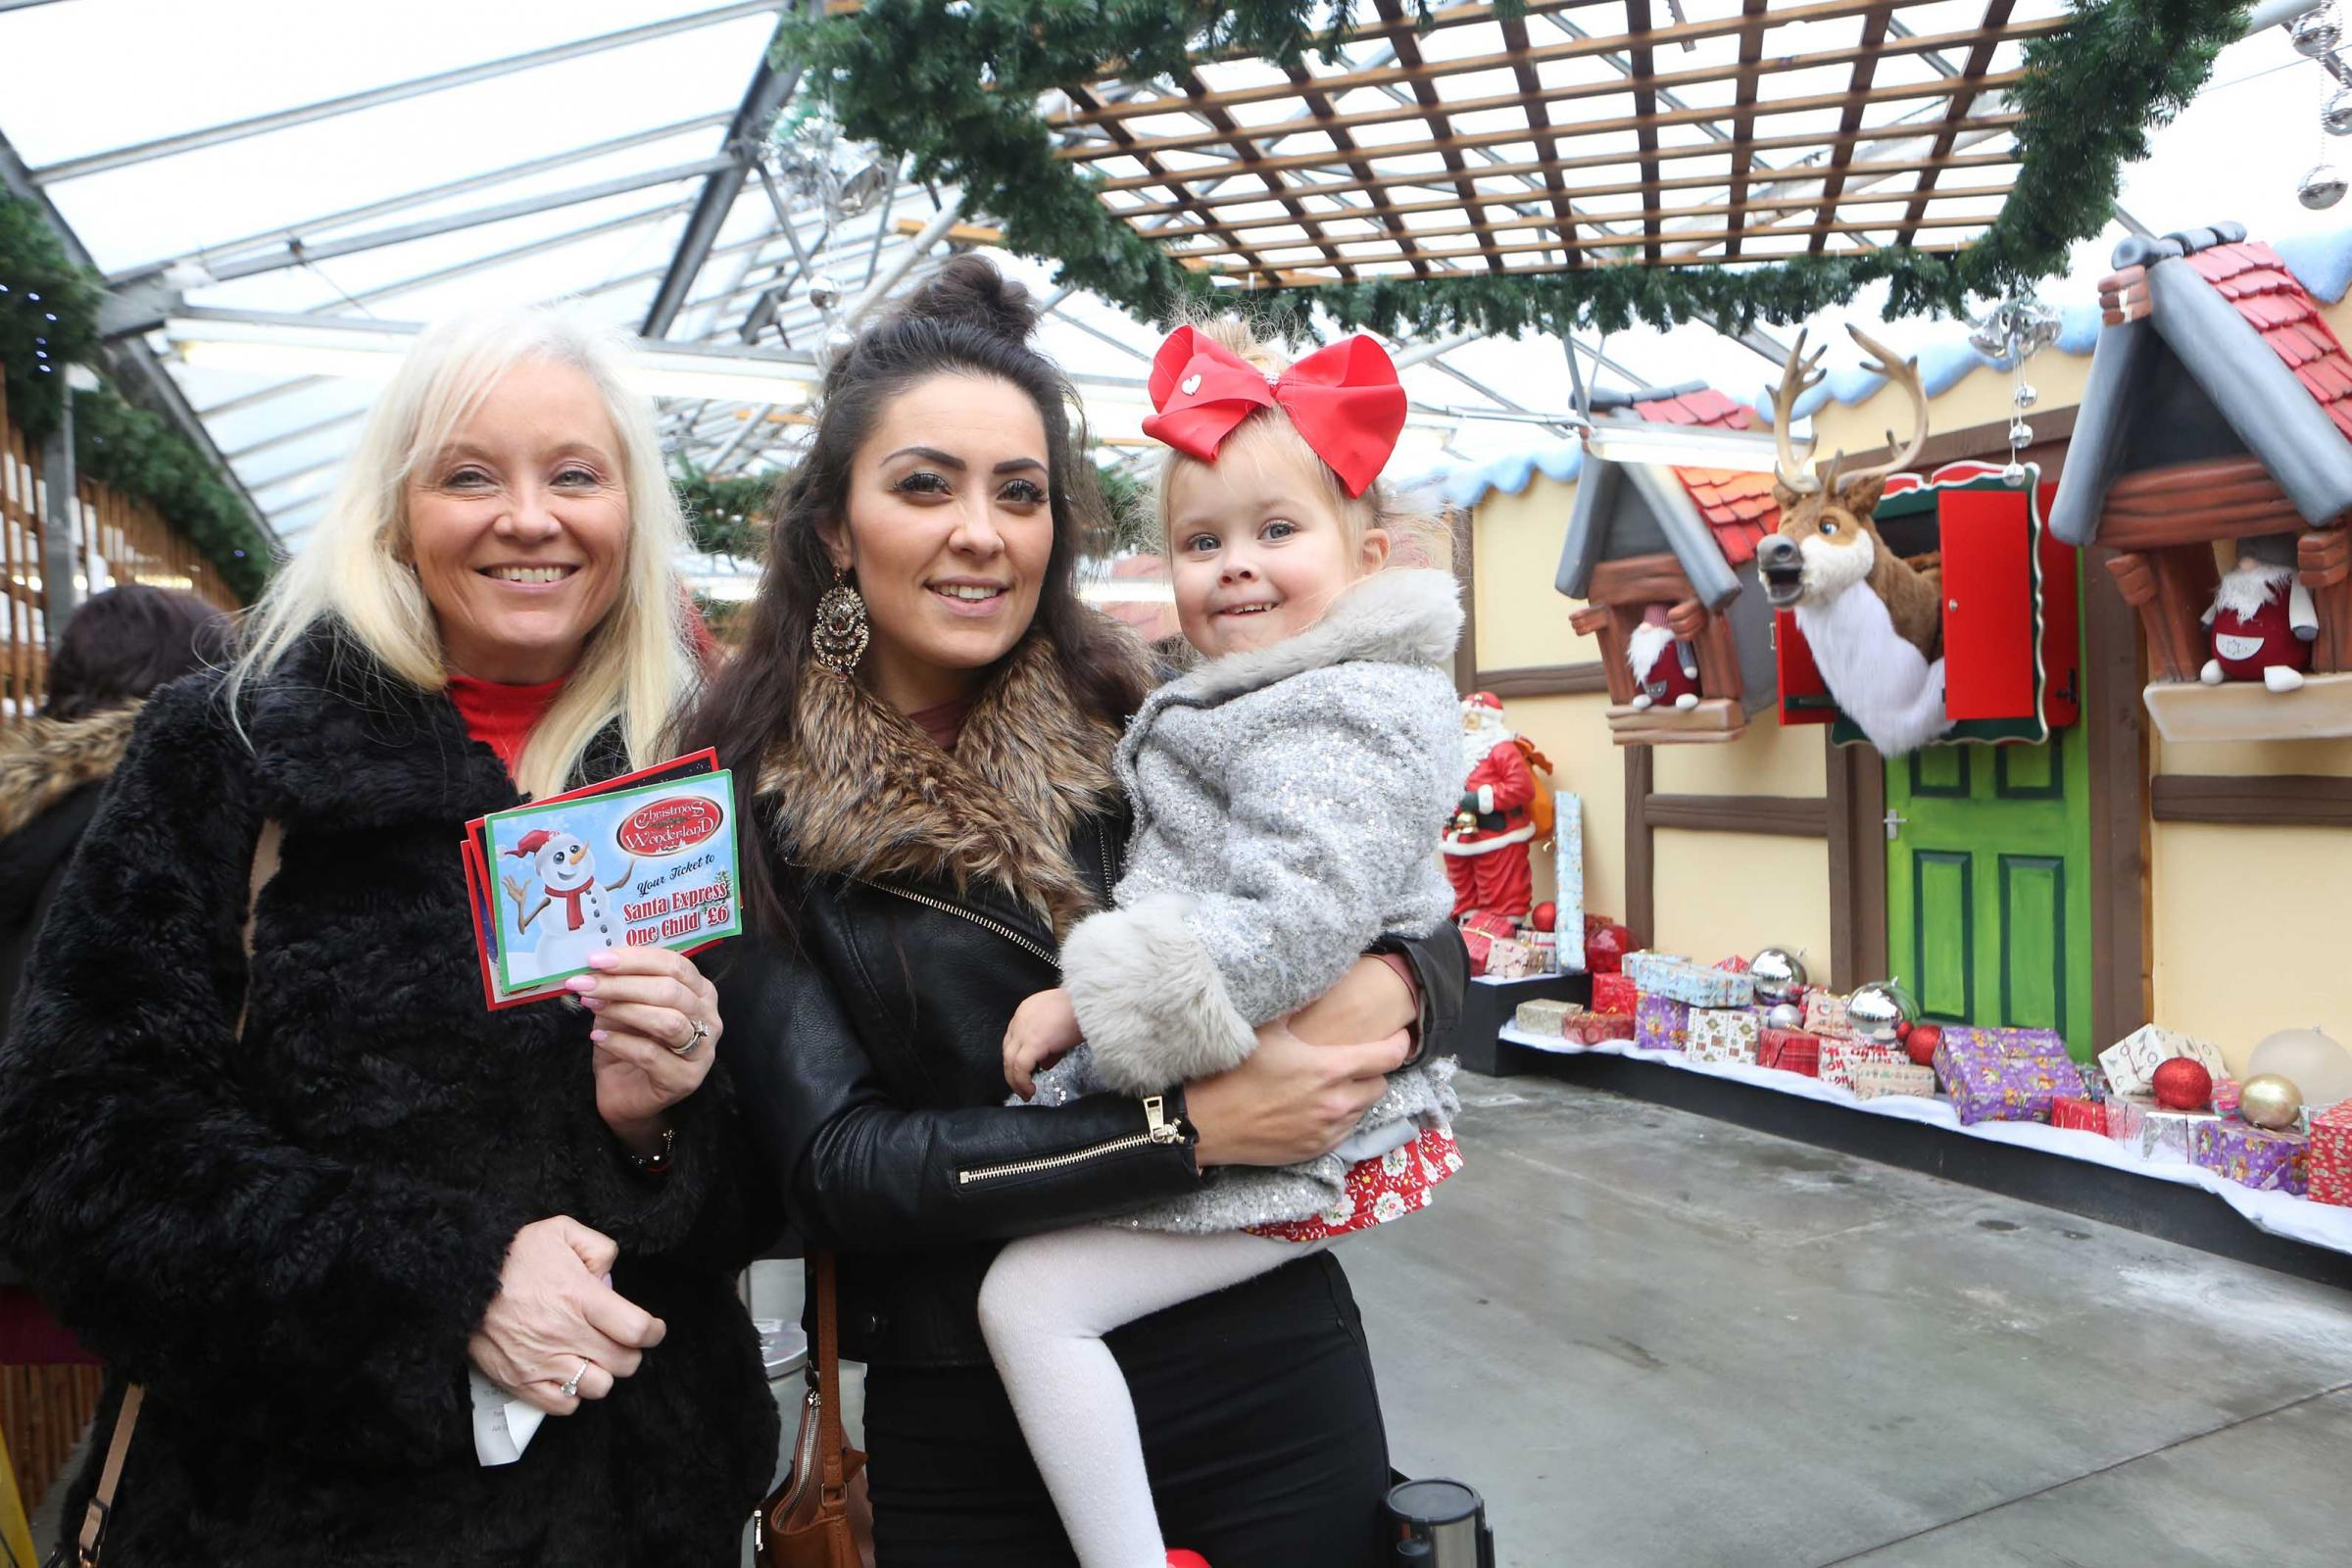 Happy customers - Families have turned out in force to visit Christmas Wonderland